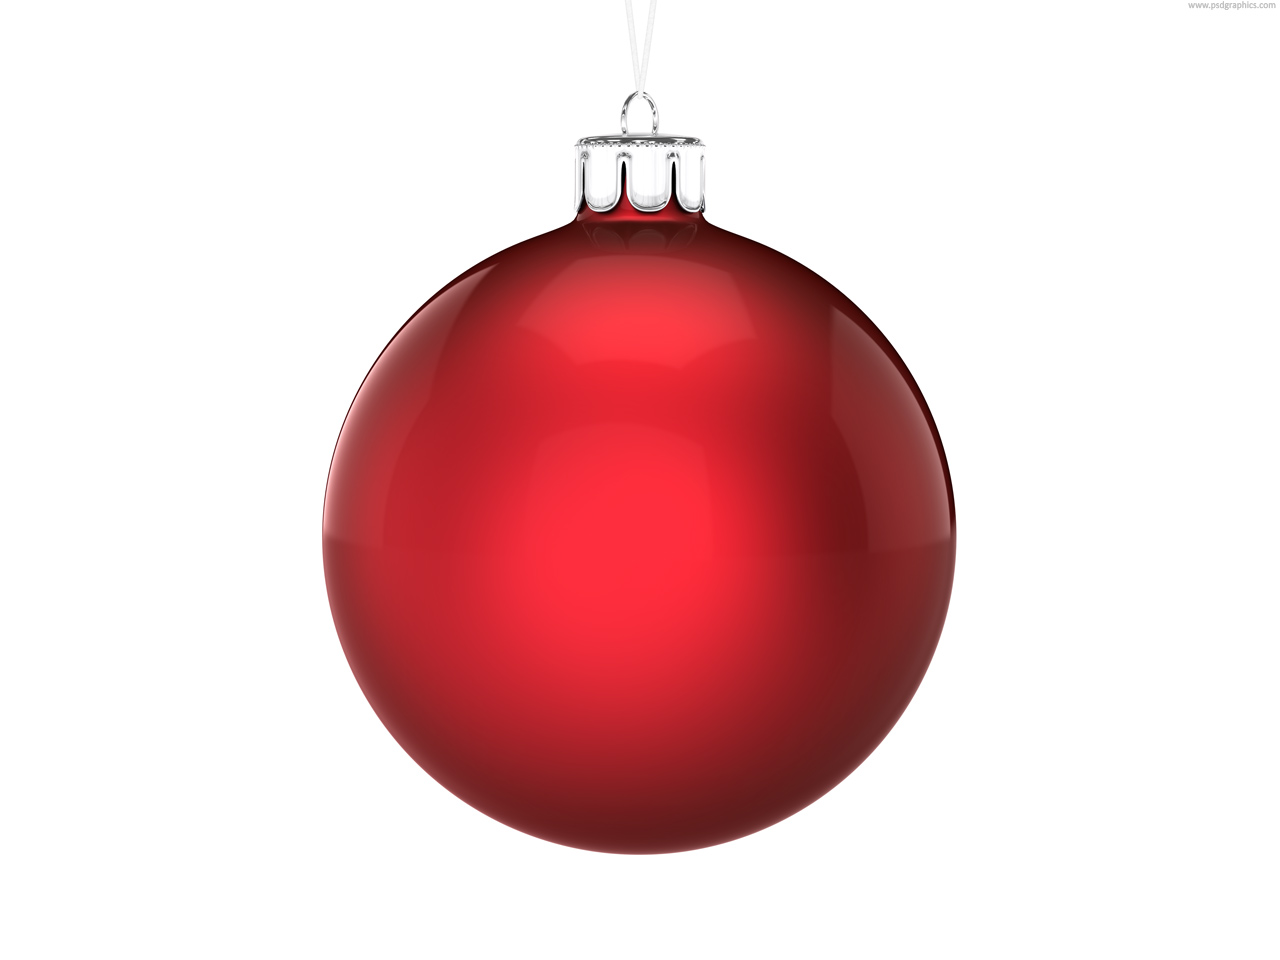 1280x960 Simple Christmas Ornaments Clip Art Is Santa Real